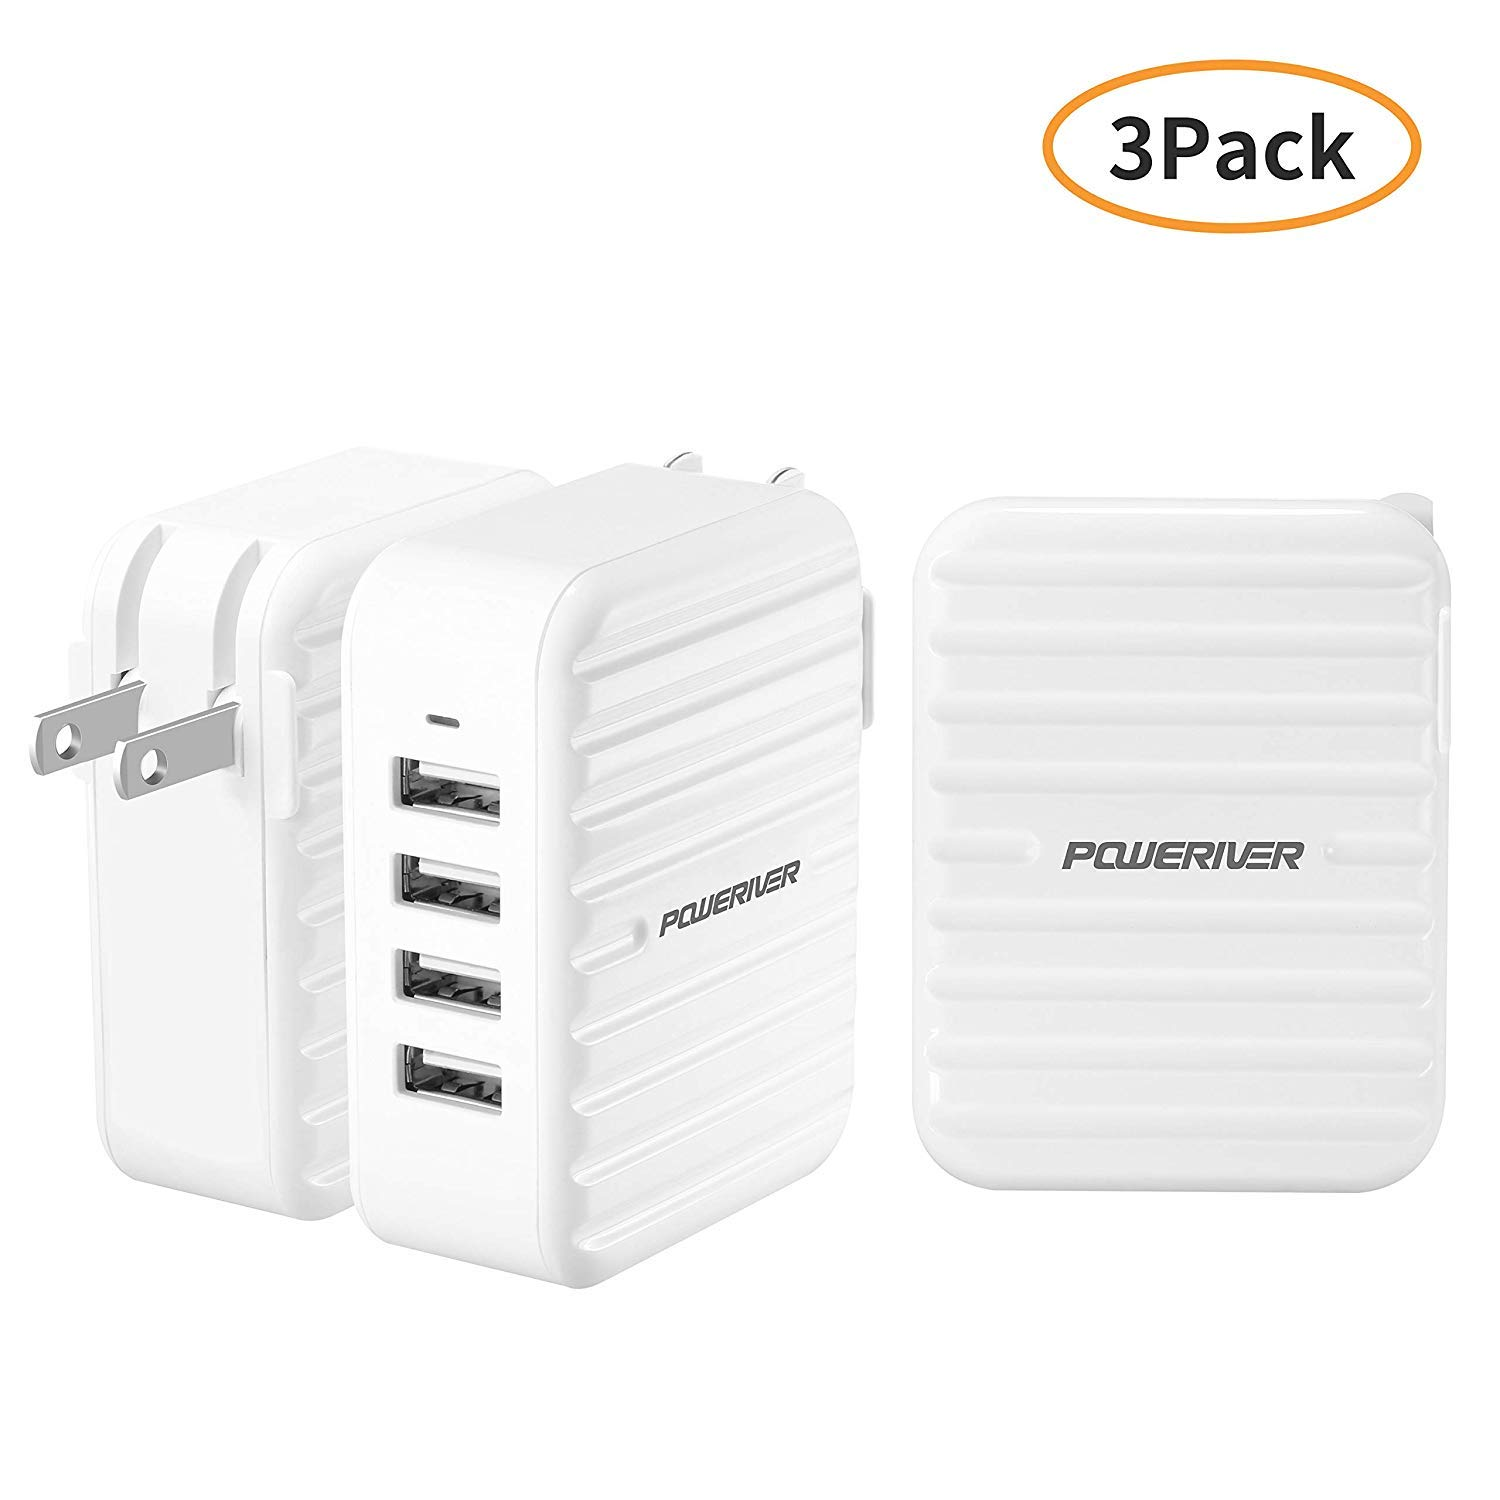 3 Pack USB Wall Charger, POWERIVER Charging Station, 4 Port Travel Wall Charger with SmartID Technology Foldable Plug for iPhone iPad, Samsung Galaxy, HTC